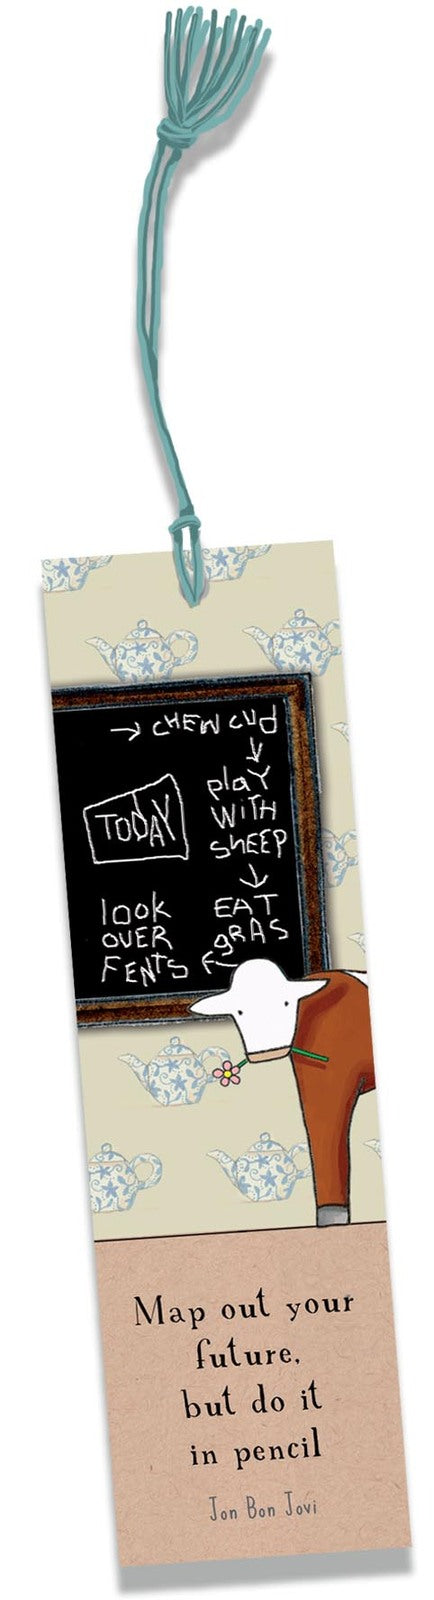 Cow's Grand Plans- Bookmark